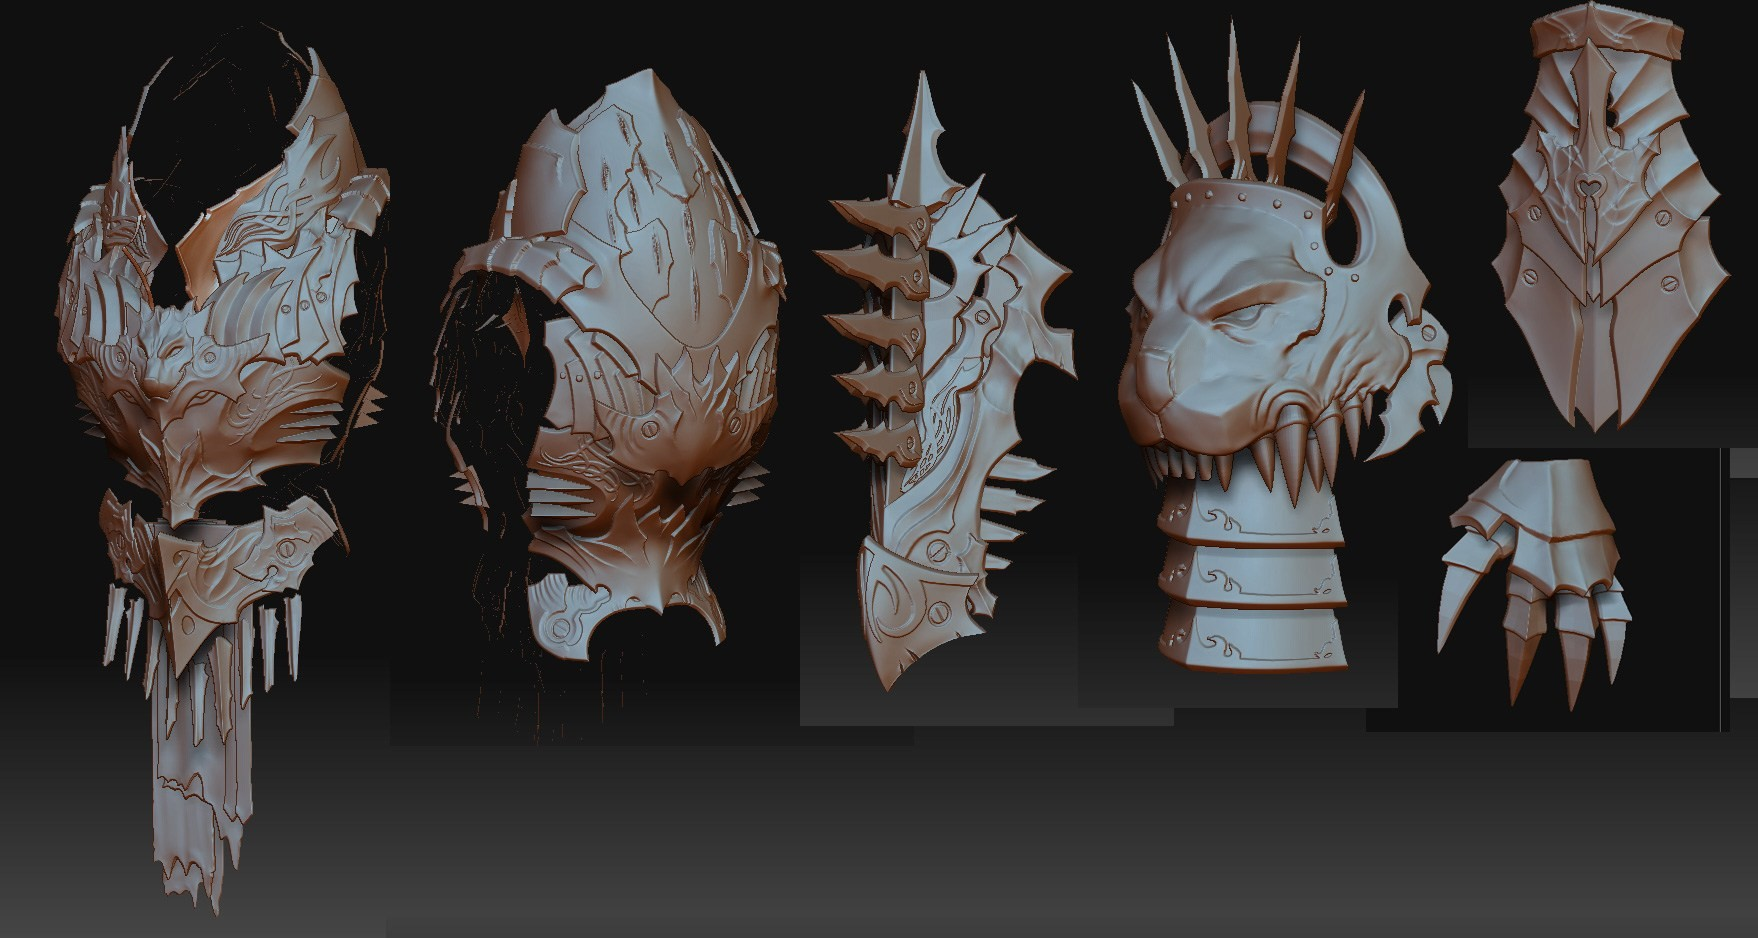 Zbrushing for them normal maps and ambient textures.